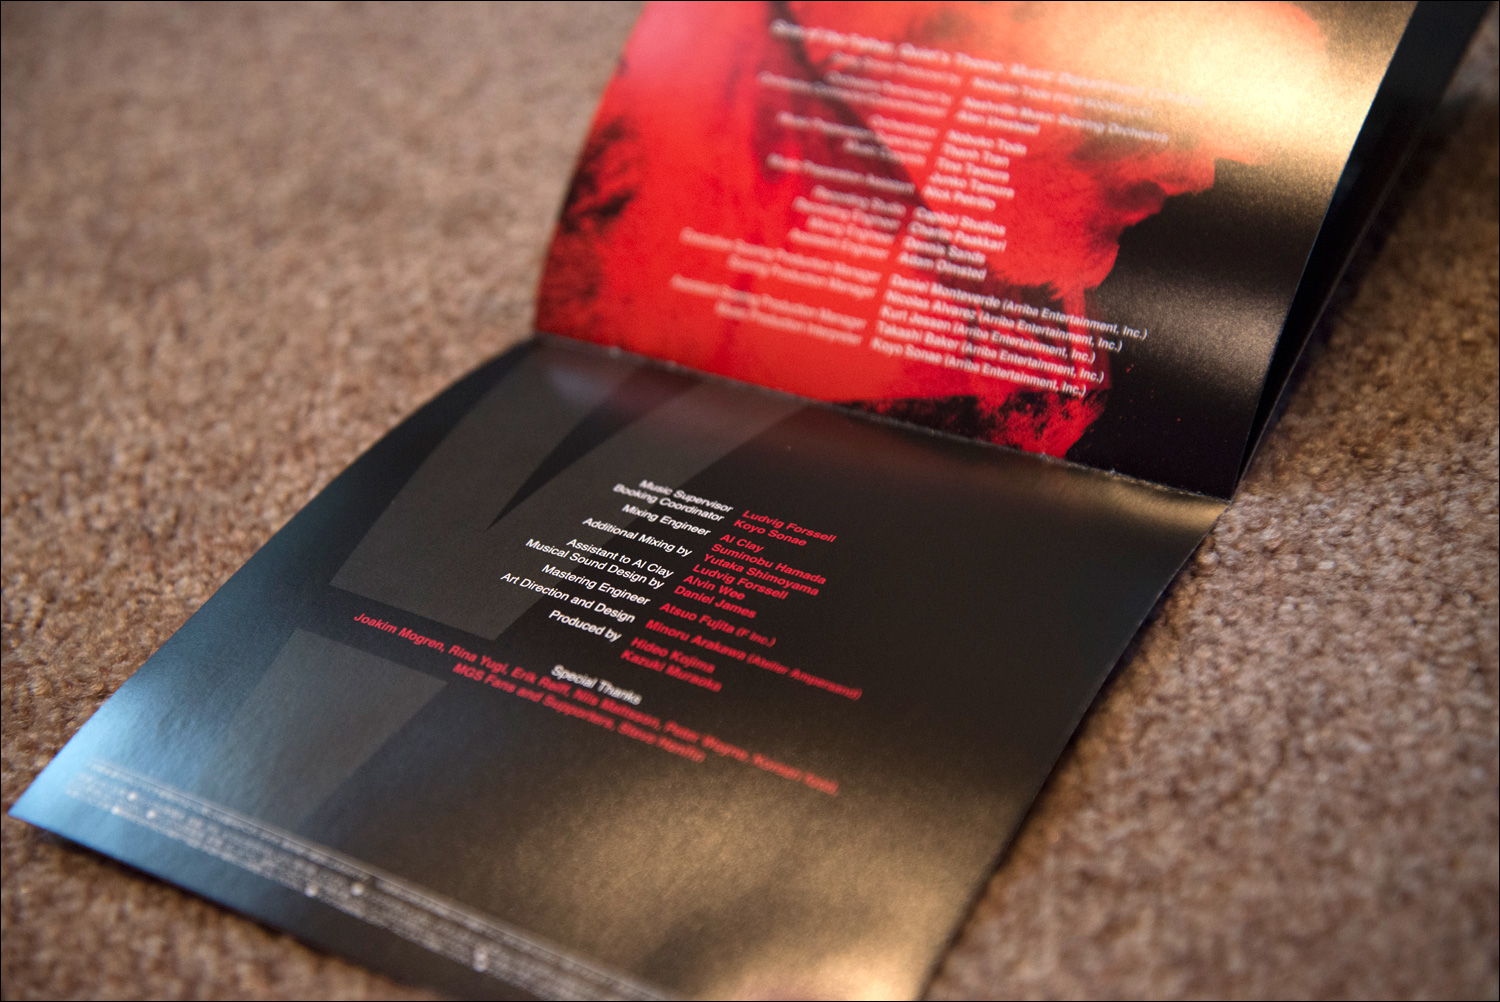 Metal-Gear-Solid-V-Original-Soundtrack-Booklet-Credits-2